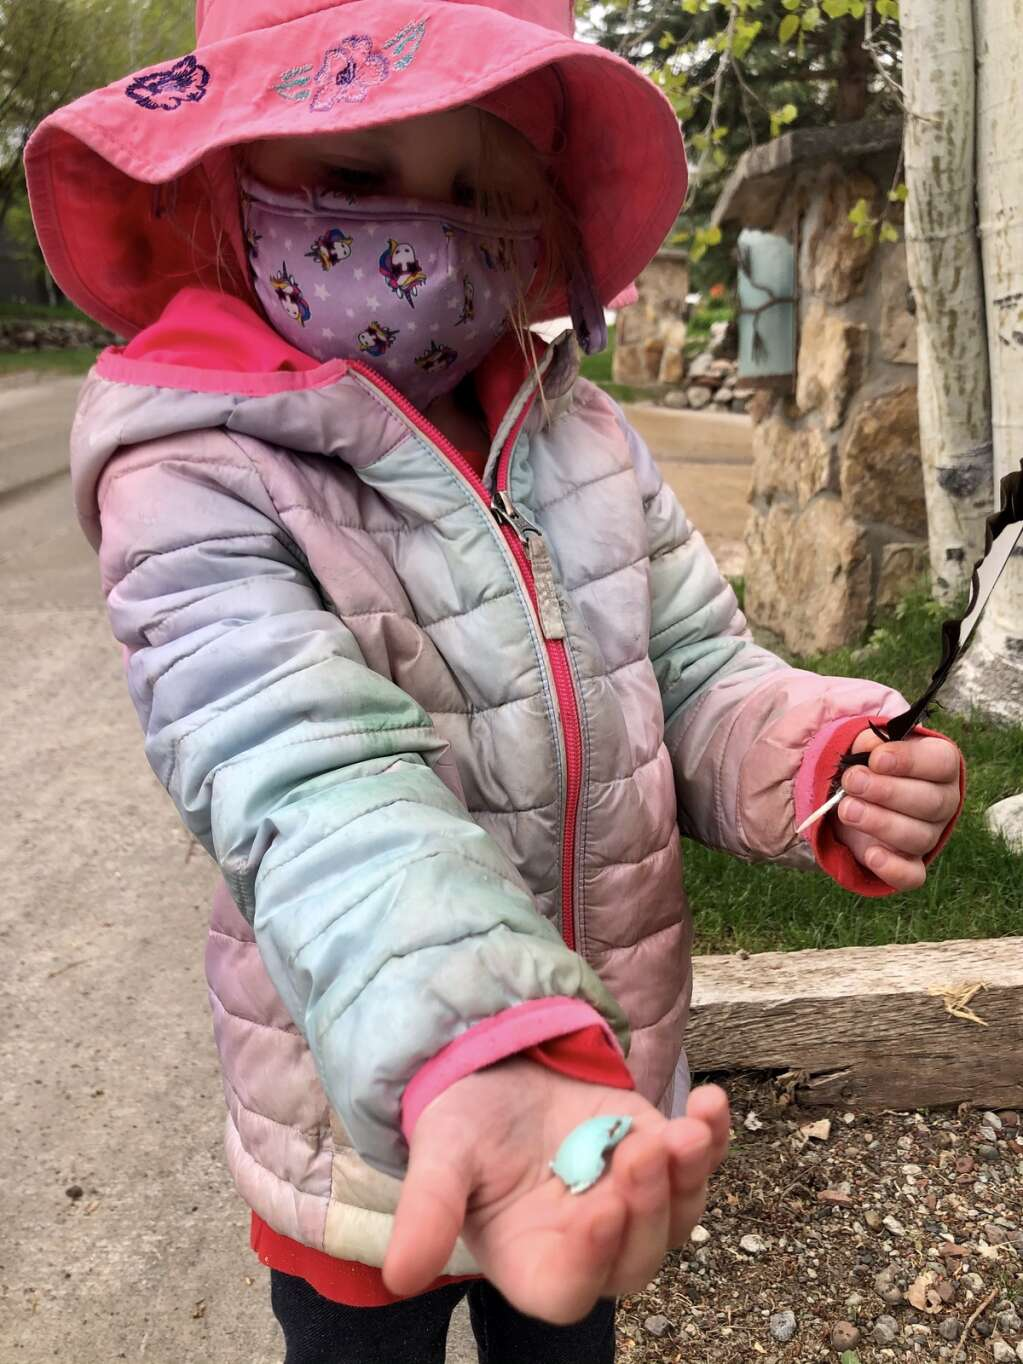 Evelyn Ferguson, age 4, shows off a robin's egg shell she spotted during the annual Snowmass Village Town Clean Up Day on Friday, May 21, 2021. (Kaya Williams/The Snowmass Sun)